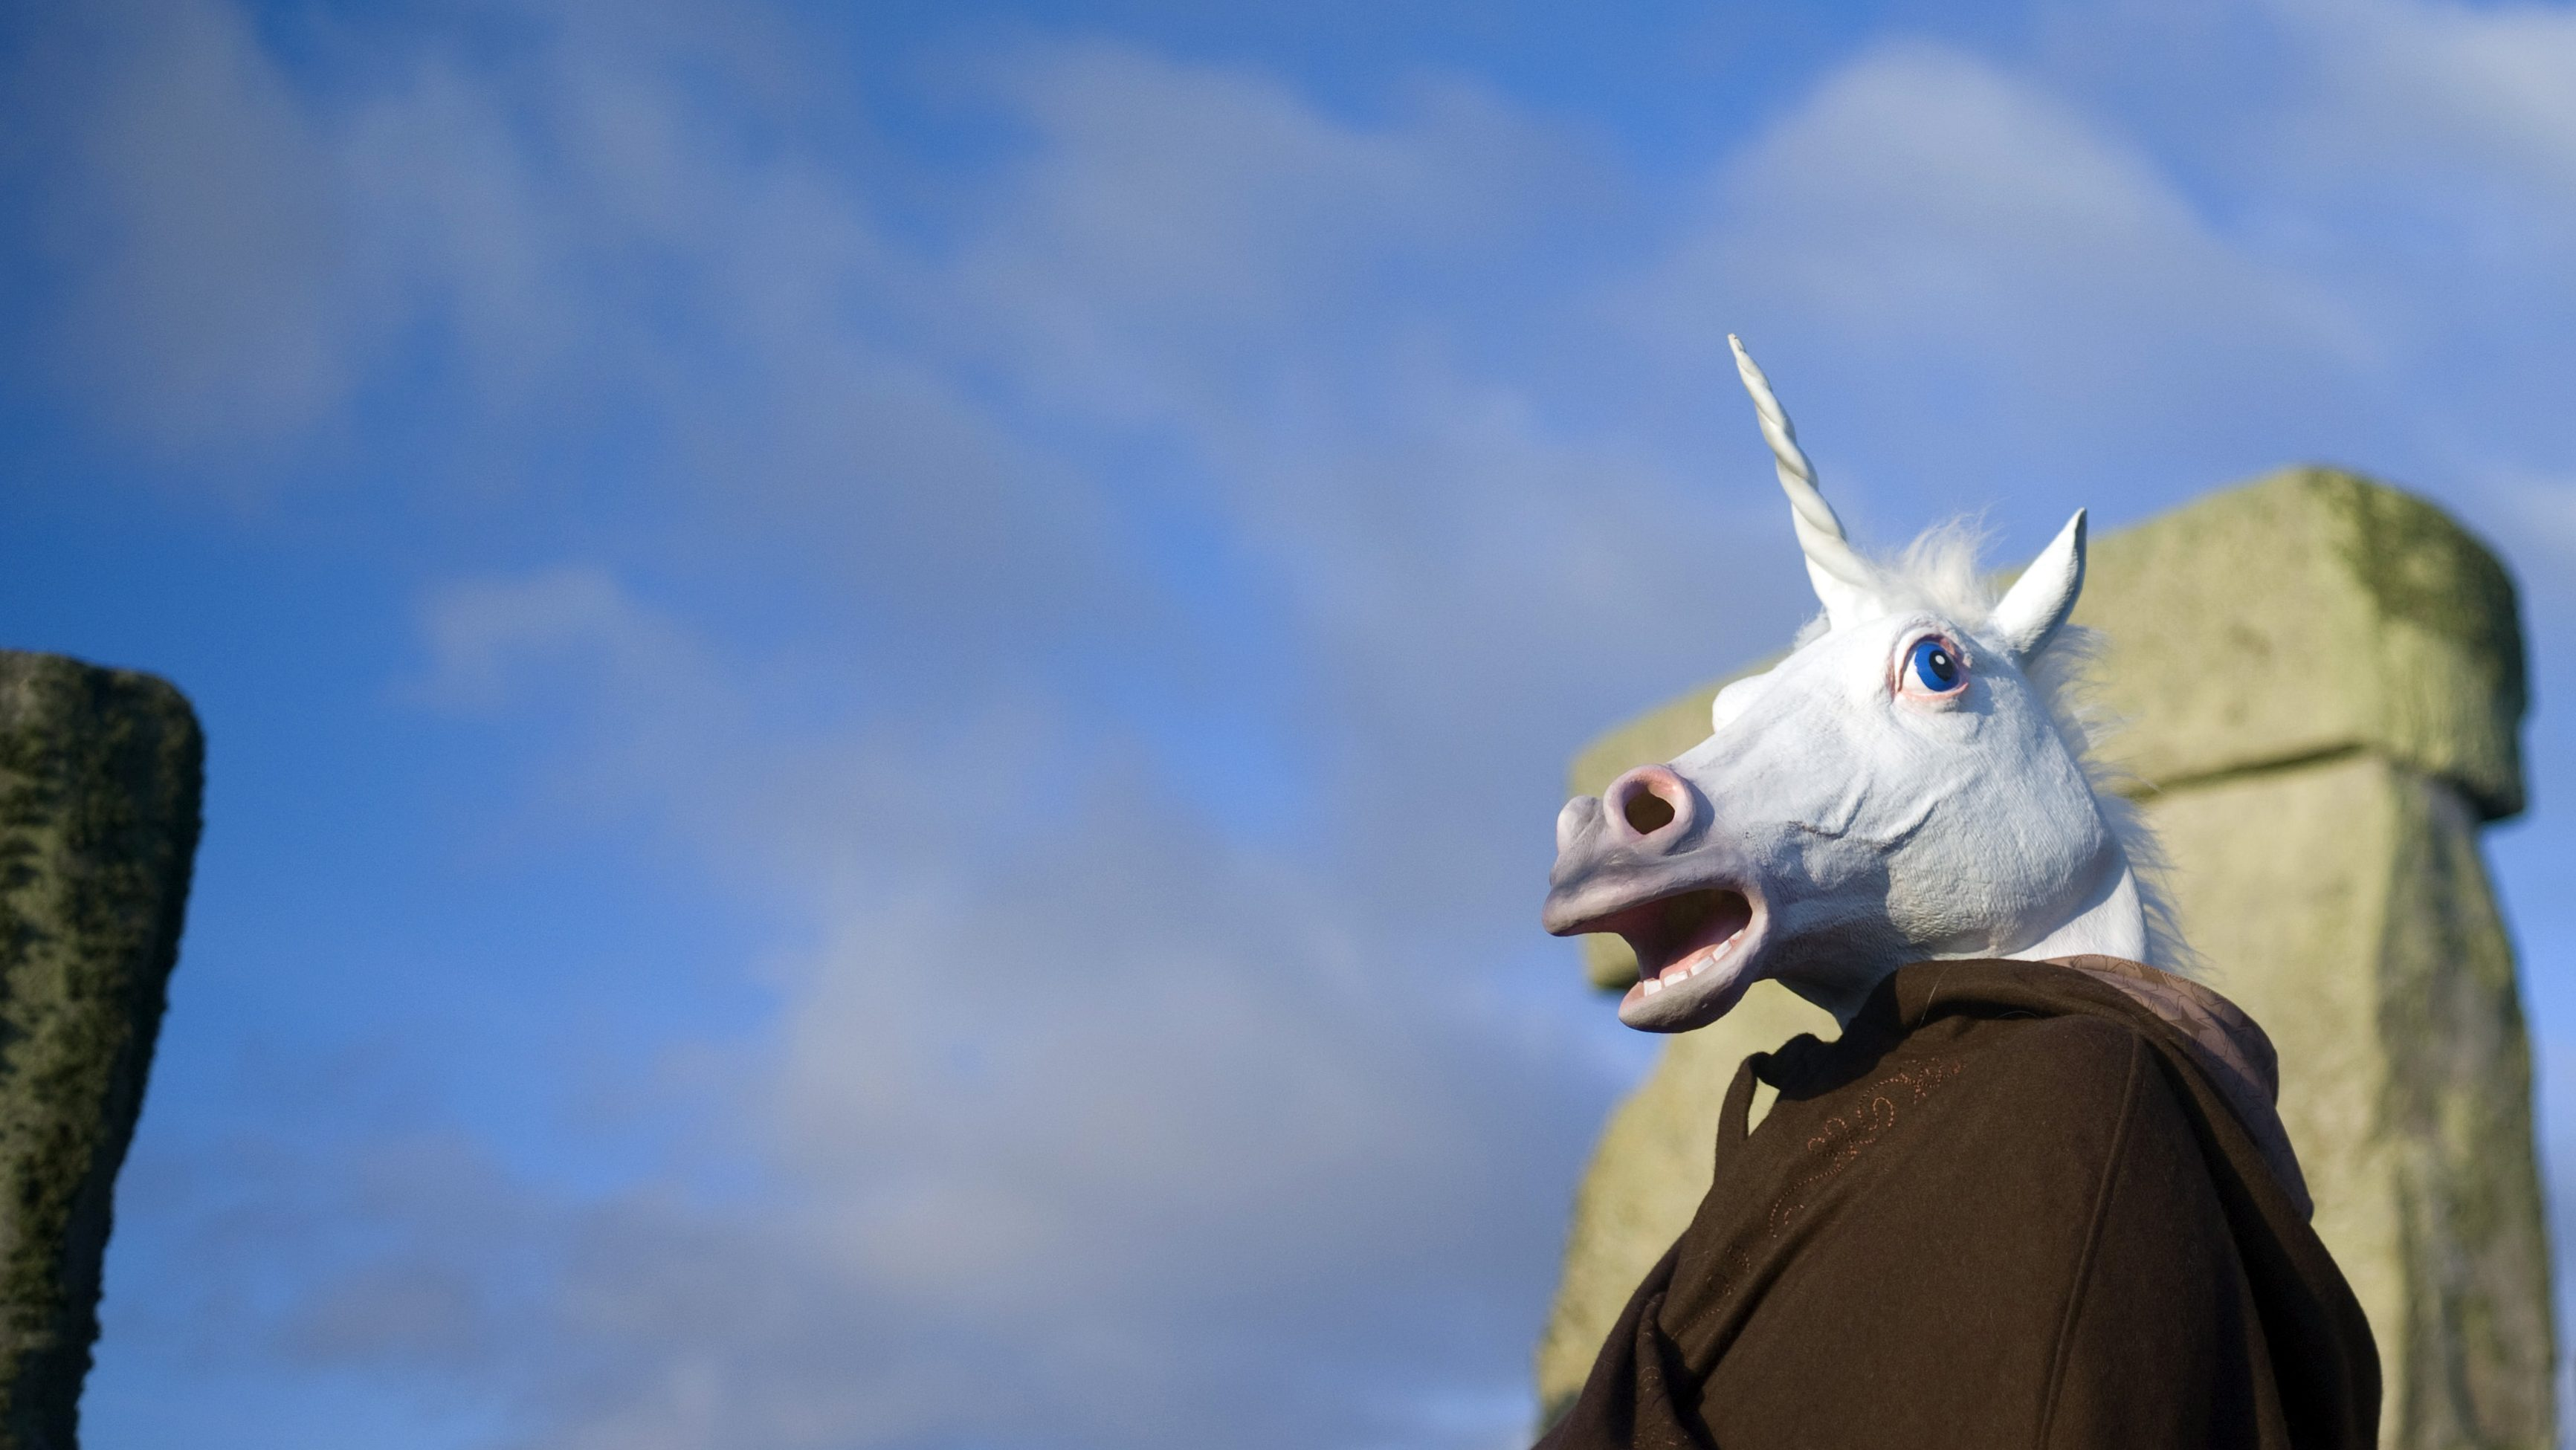 A reveller dressed as a unicorn celebrates the sunrise during the winter solstice at Stonehenge on Salisbury plain in southern England December 21, 2012. The winter solstice is the shortest day of the year, and the longest night of the year.